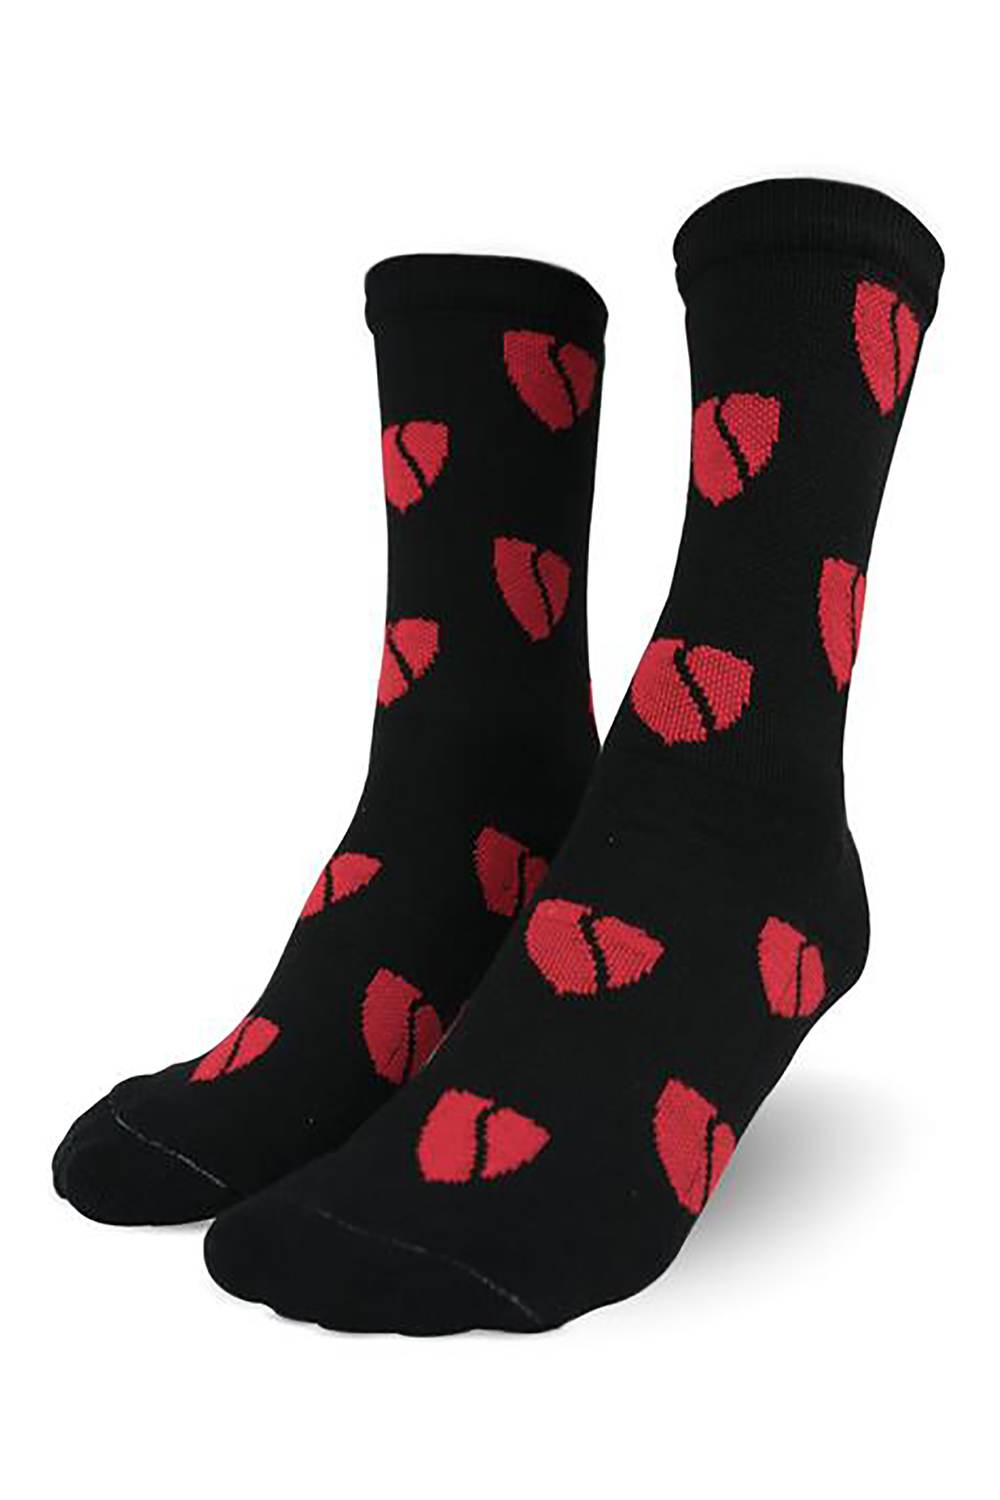 _SVIPE Socks - Black / Red